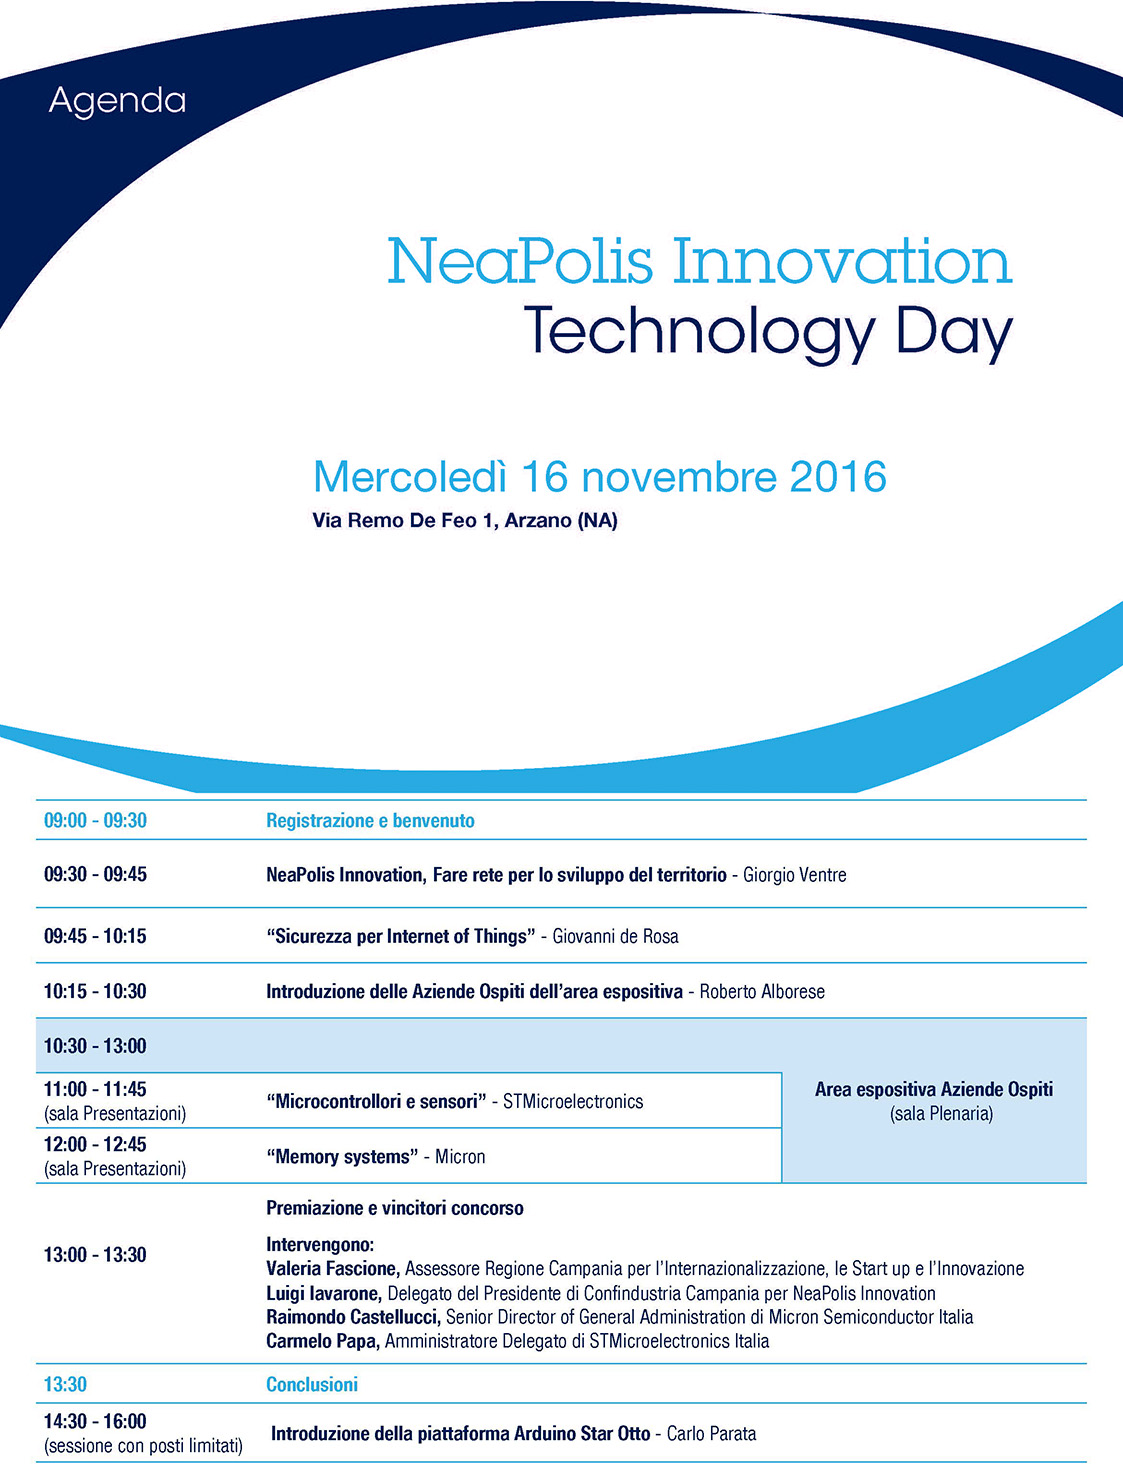 NeaPolis Innovation Technology Day 2016 Agenda